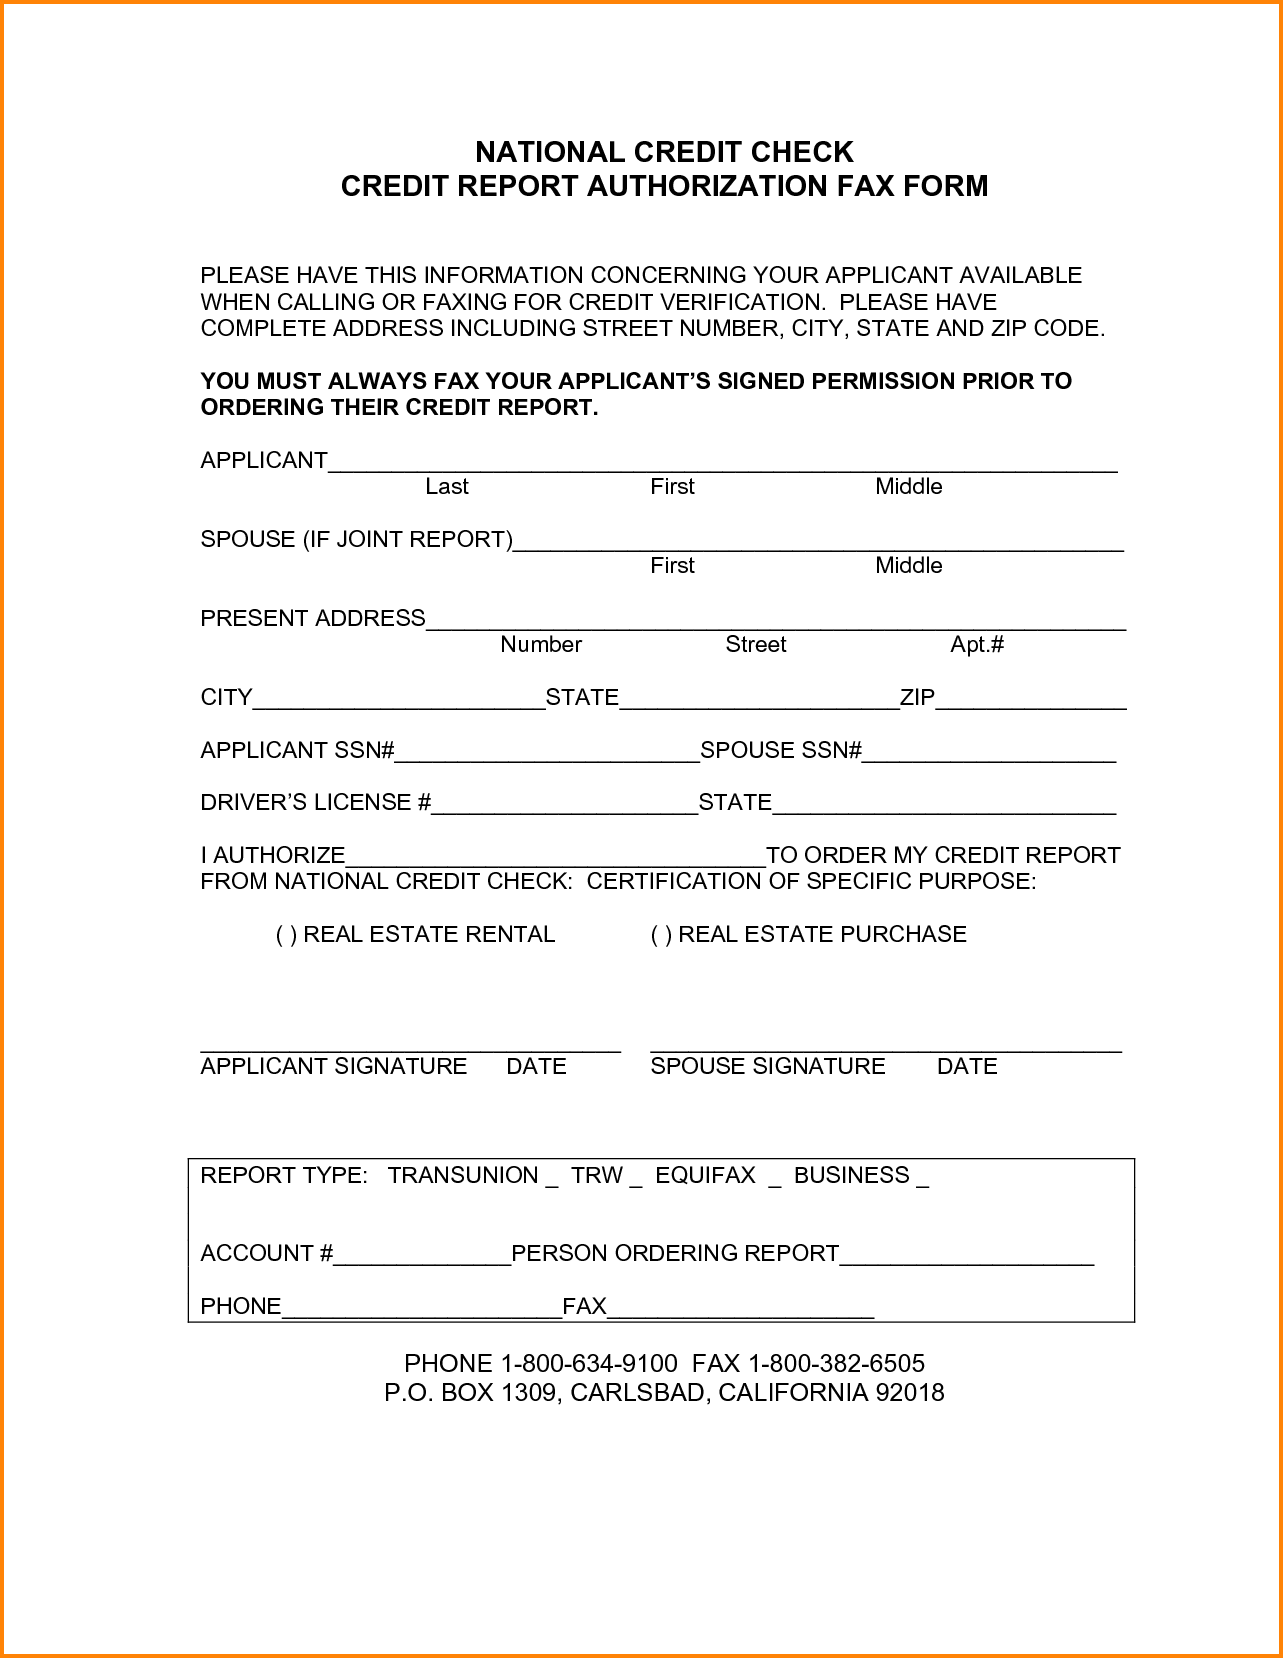 National Credit Check Report Authorization Fax Form Gabyion Card